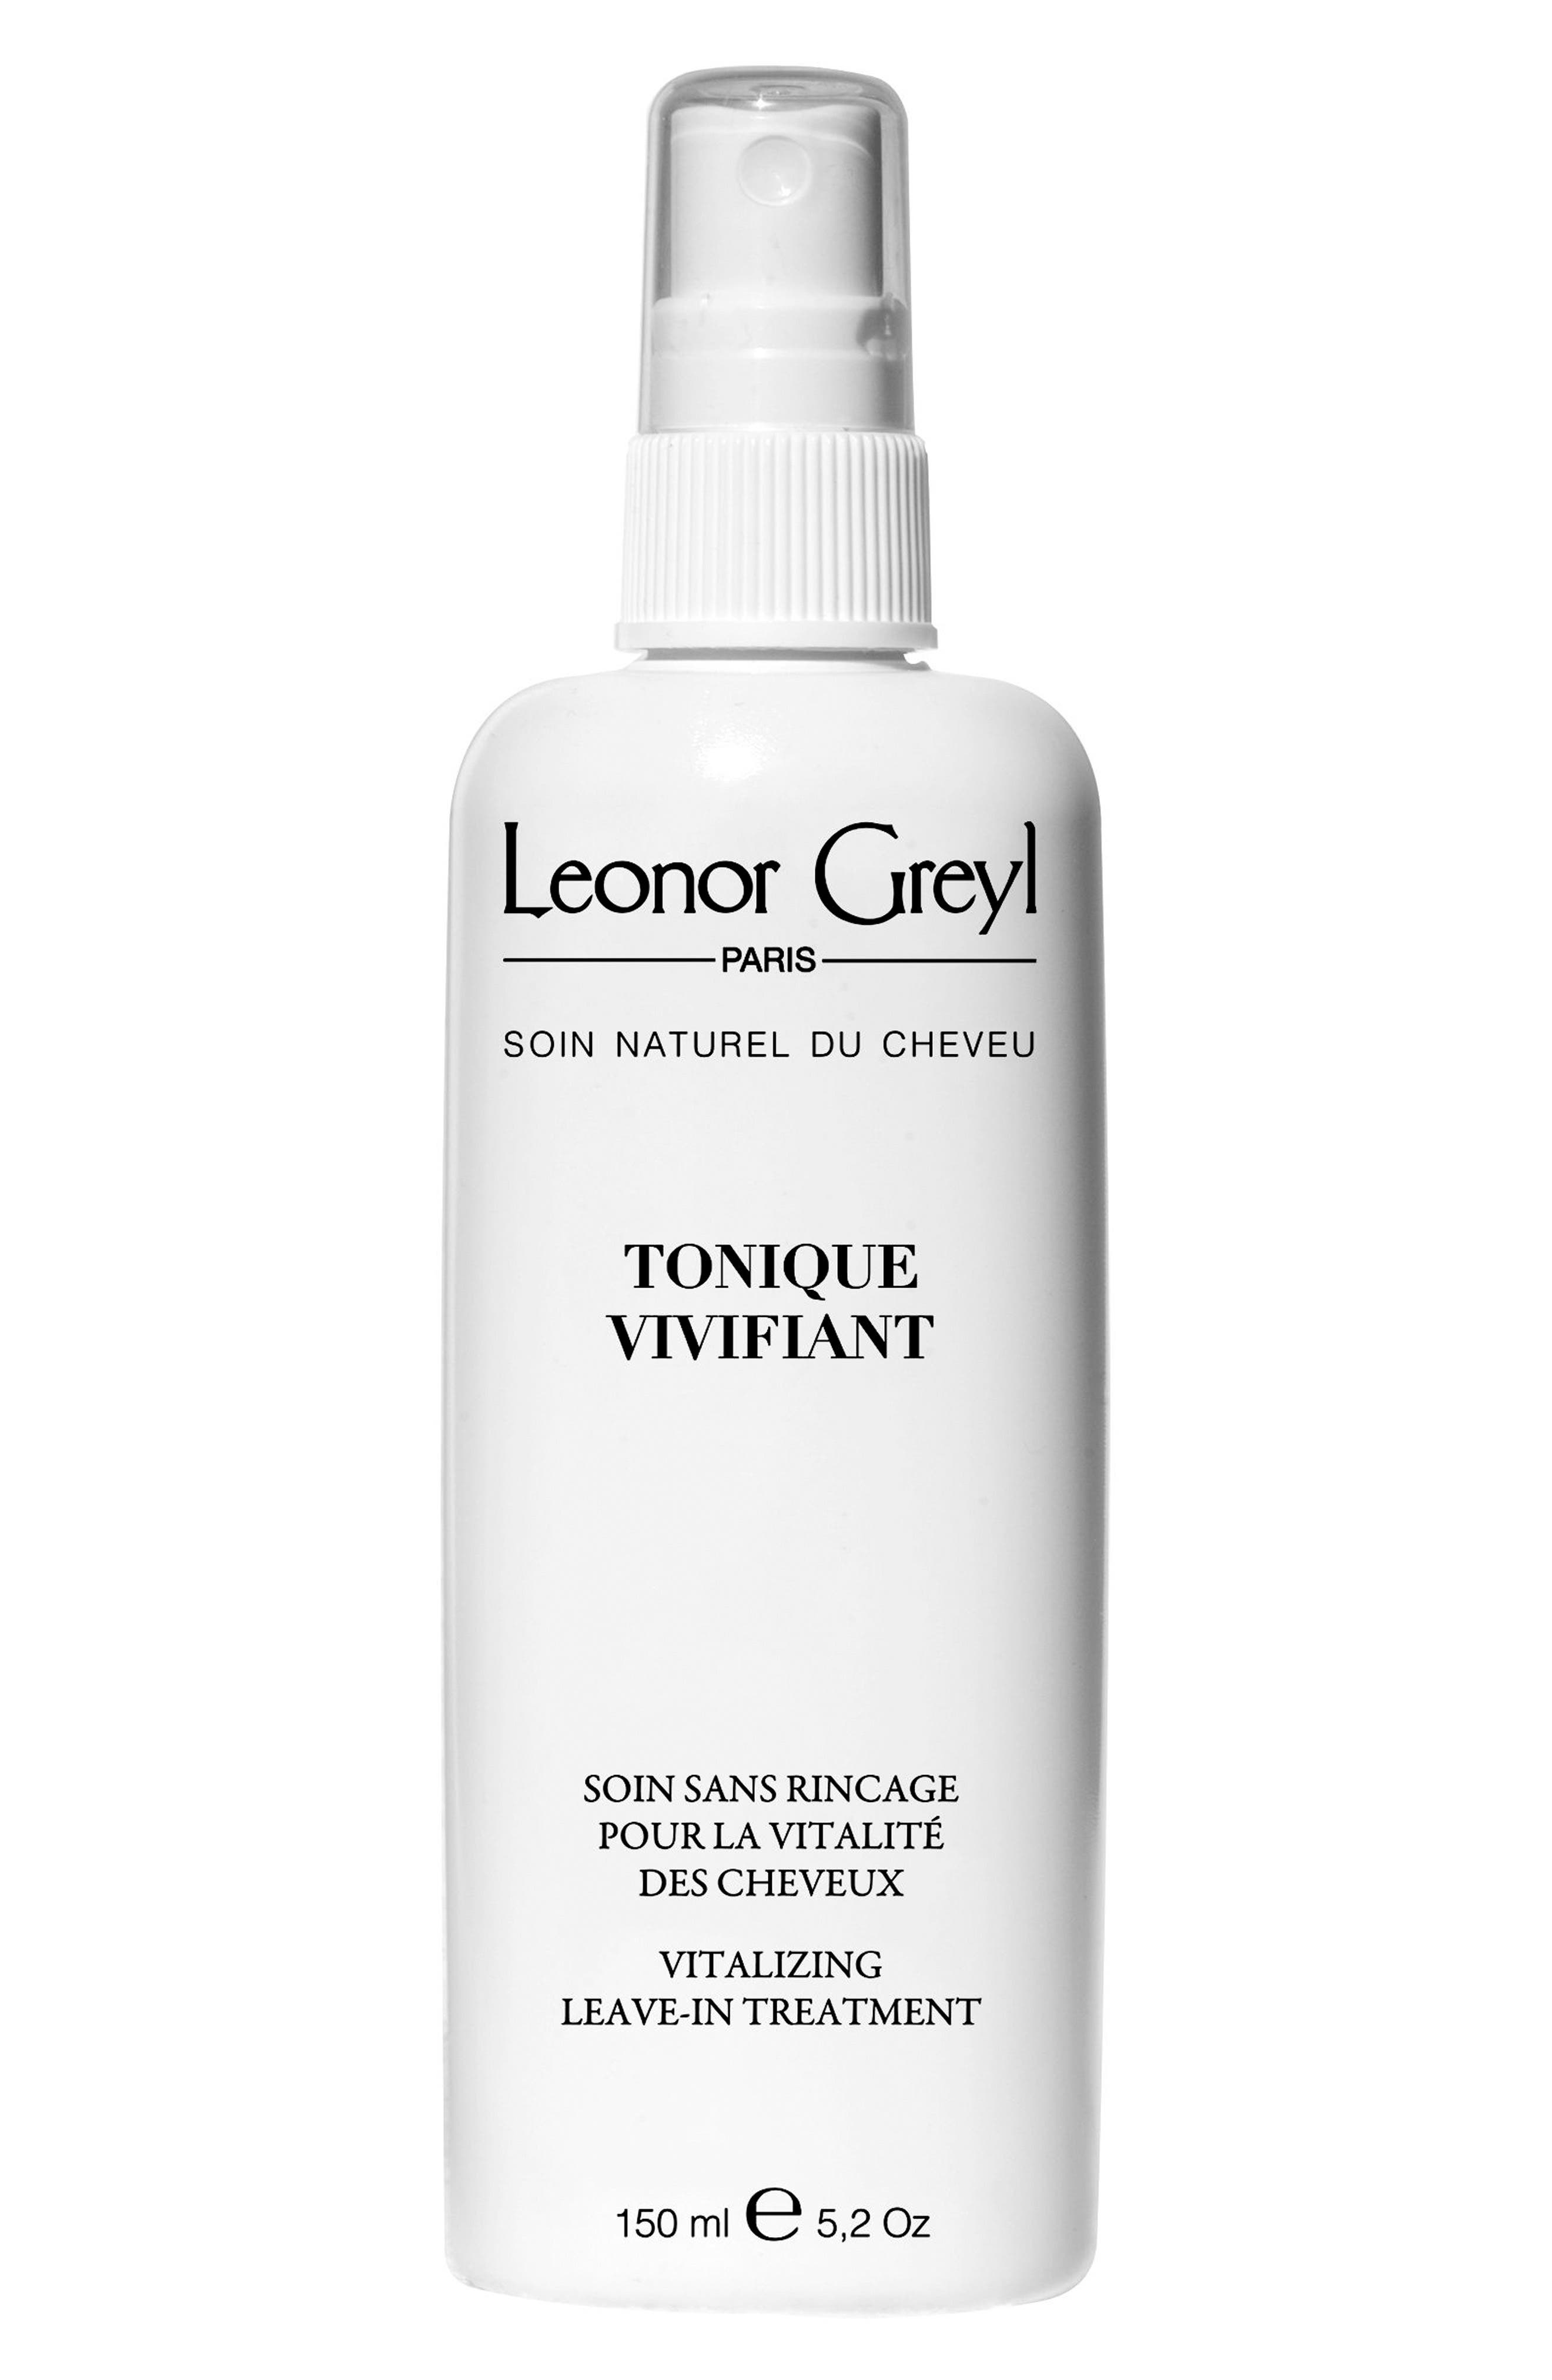 Leonor Greyl PARIS 'Tonique Vivifiant' Leave-In Treatment